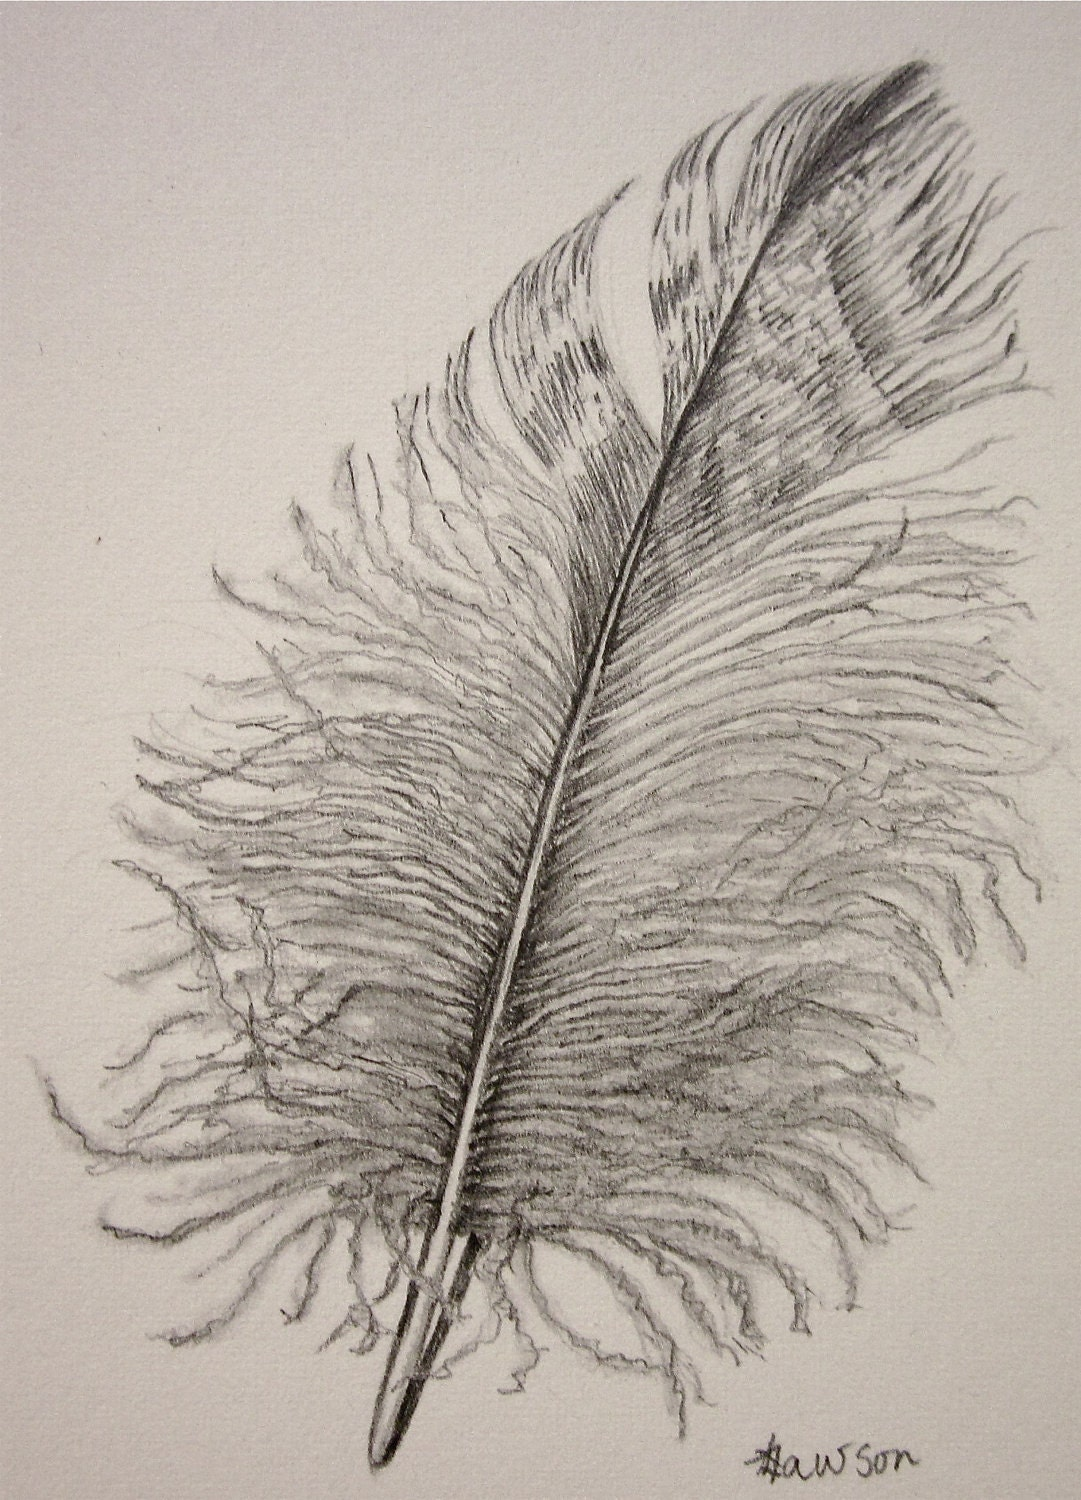 Peacock feather drawing pencil